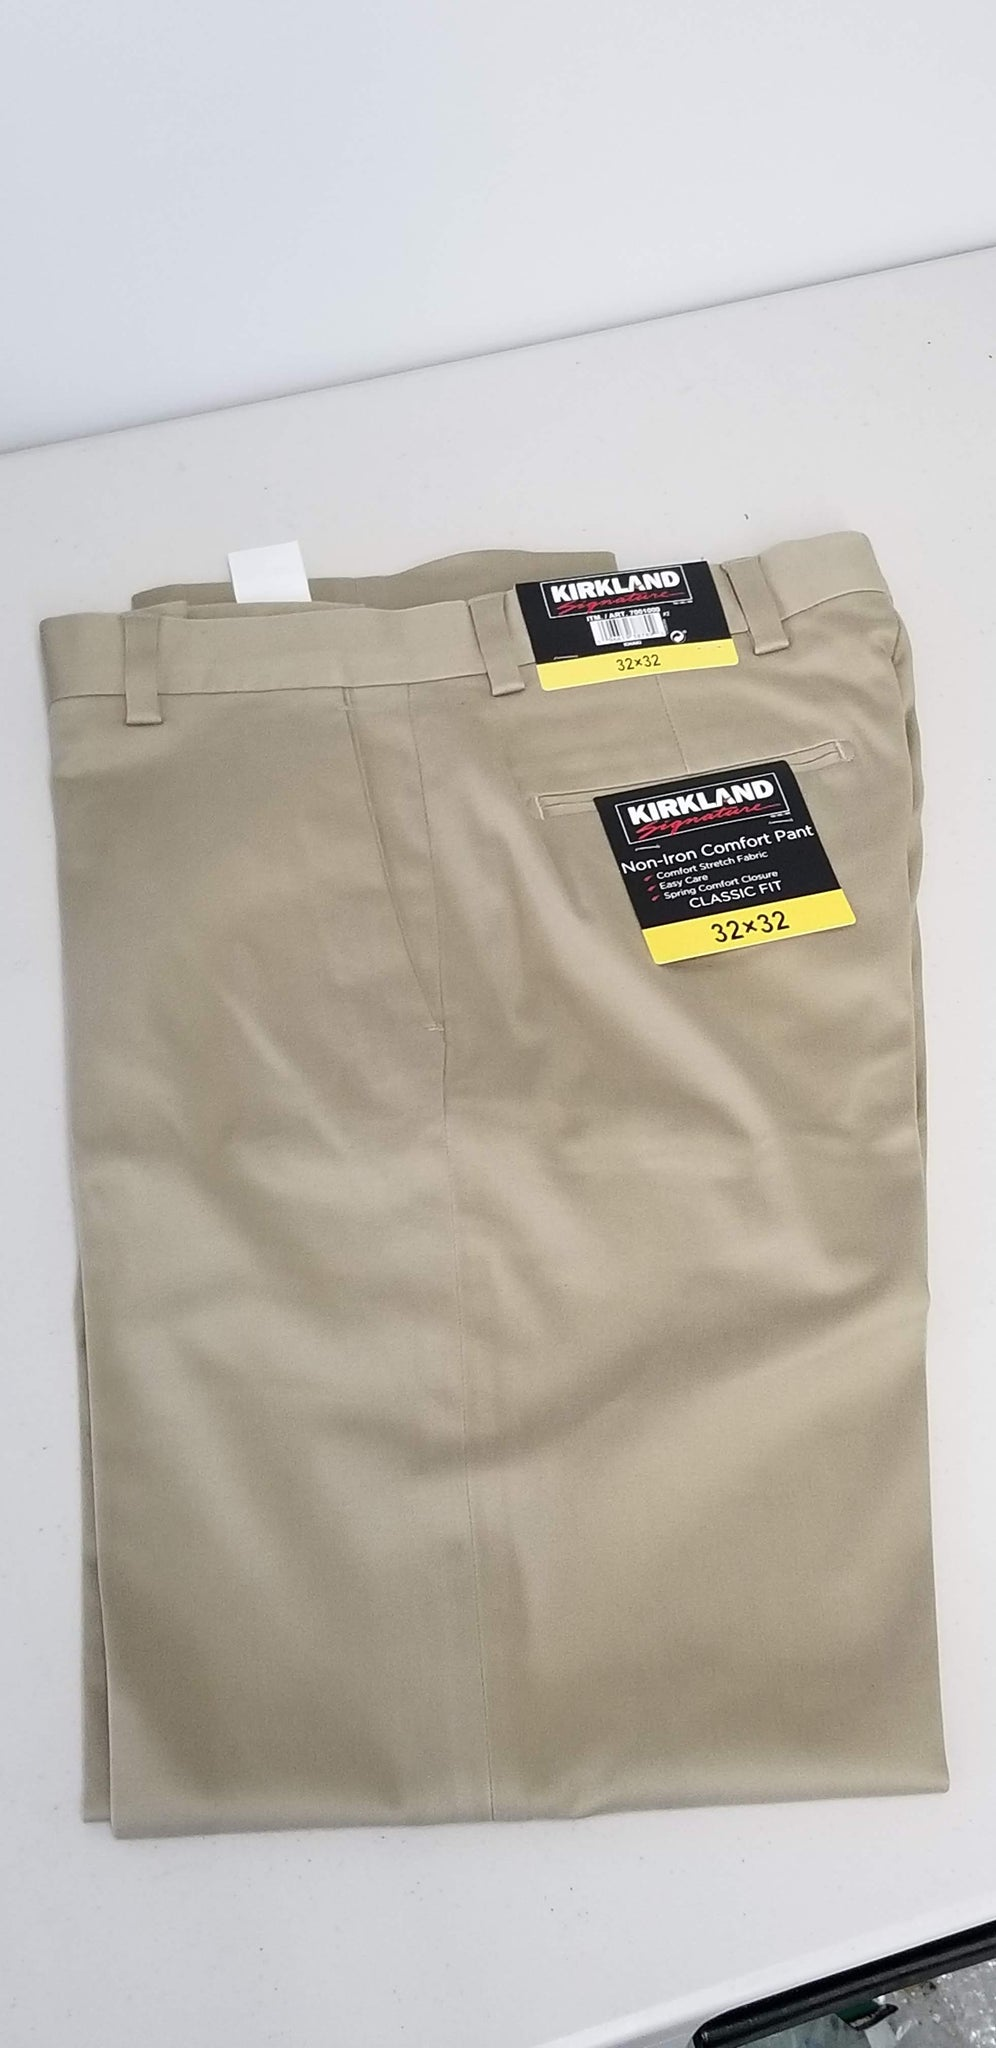 Kirkland Signature Men/'s Non Iron Classic Fit Cotton Pants